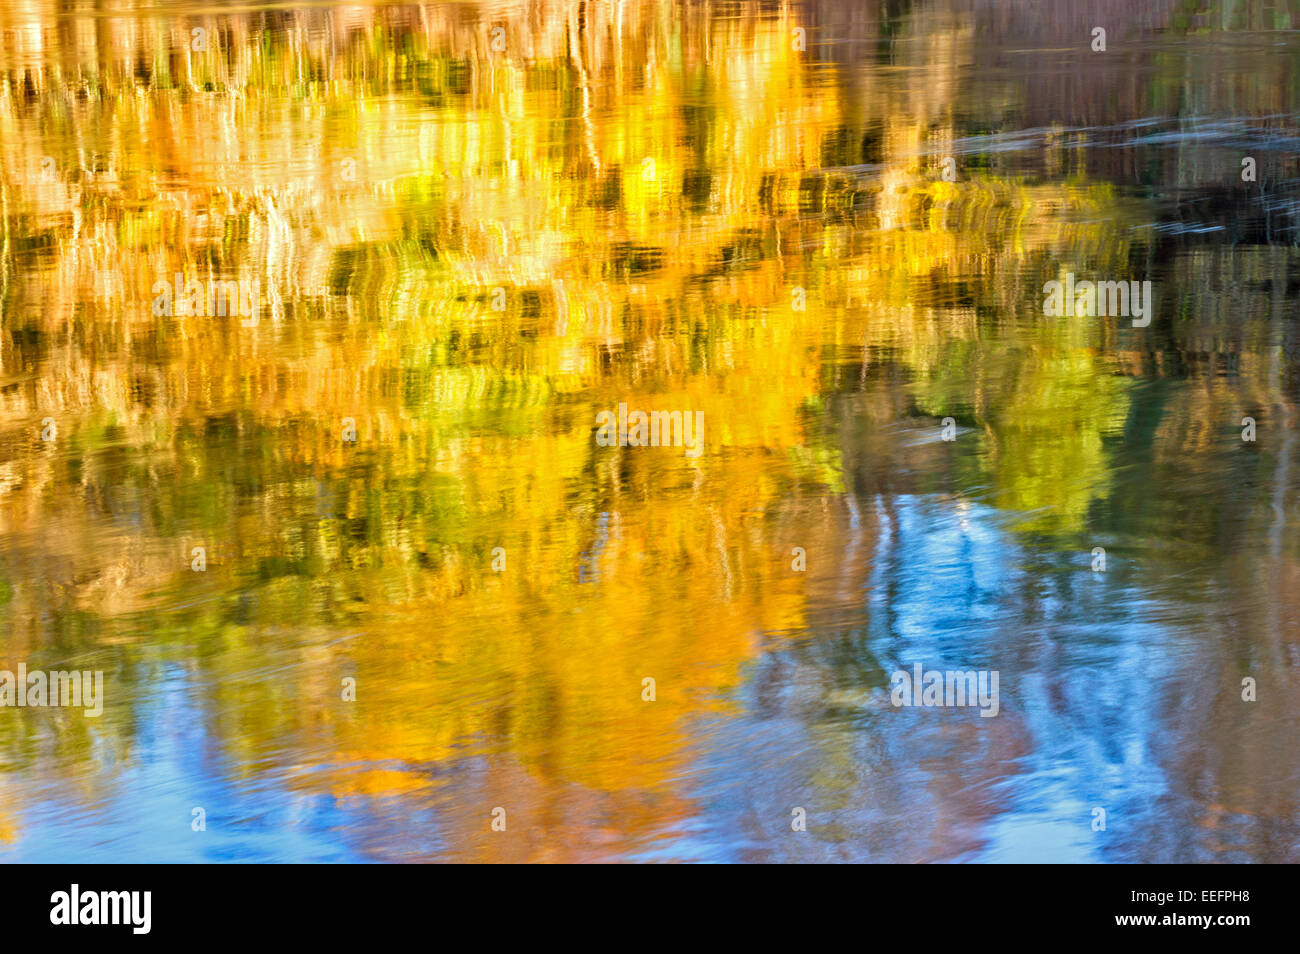 RIVER WATER REFLECTIONS BLUE SKIES AND AUTUMNAL BIRCH TREES AND LEAVES - Stock Image